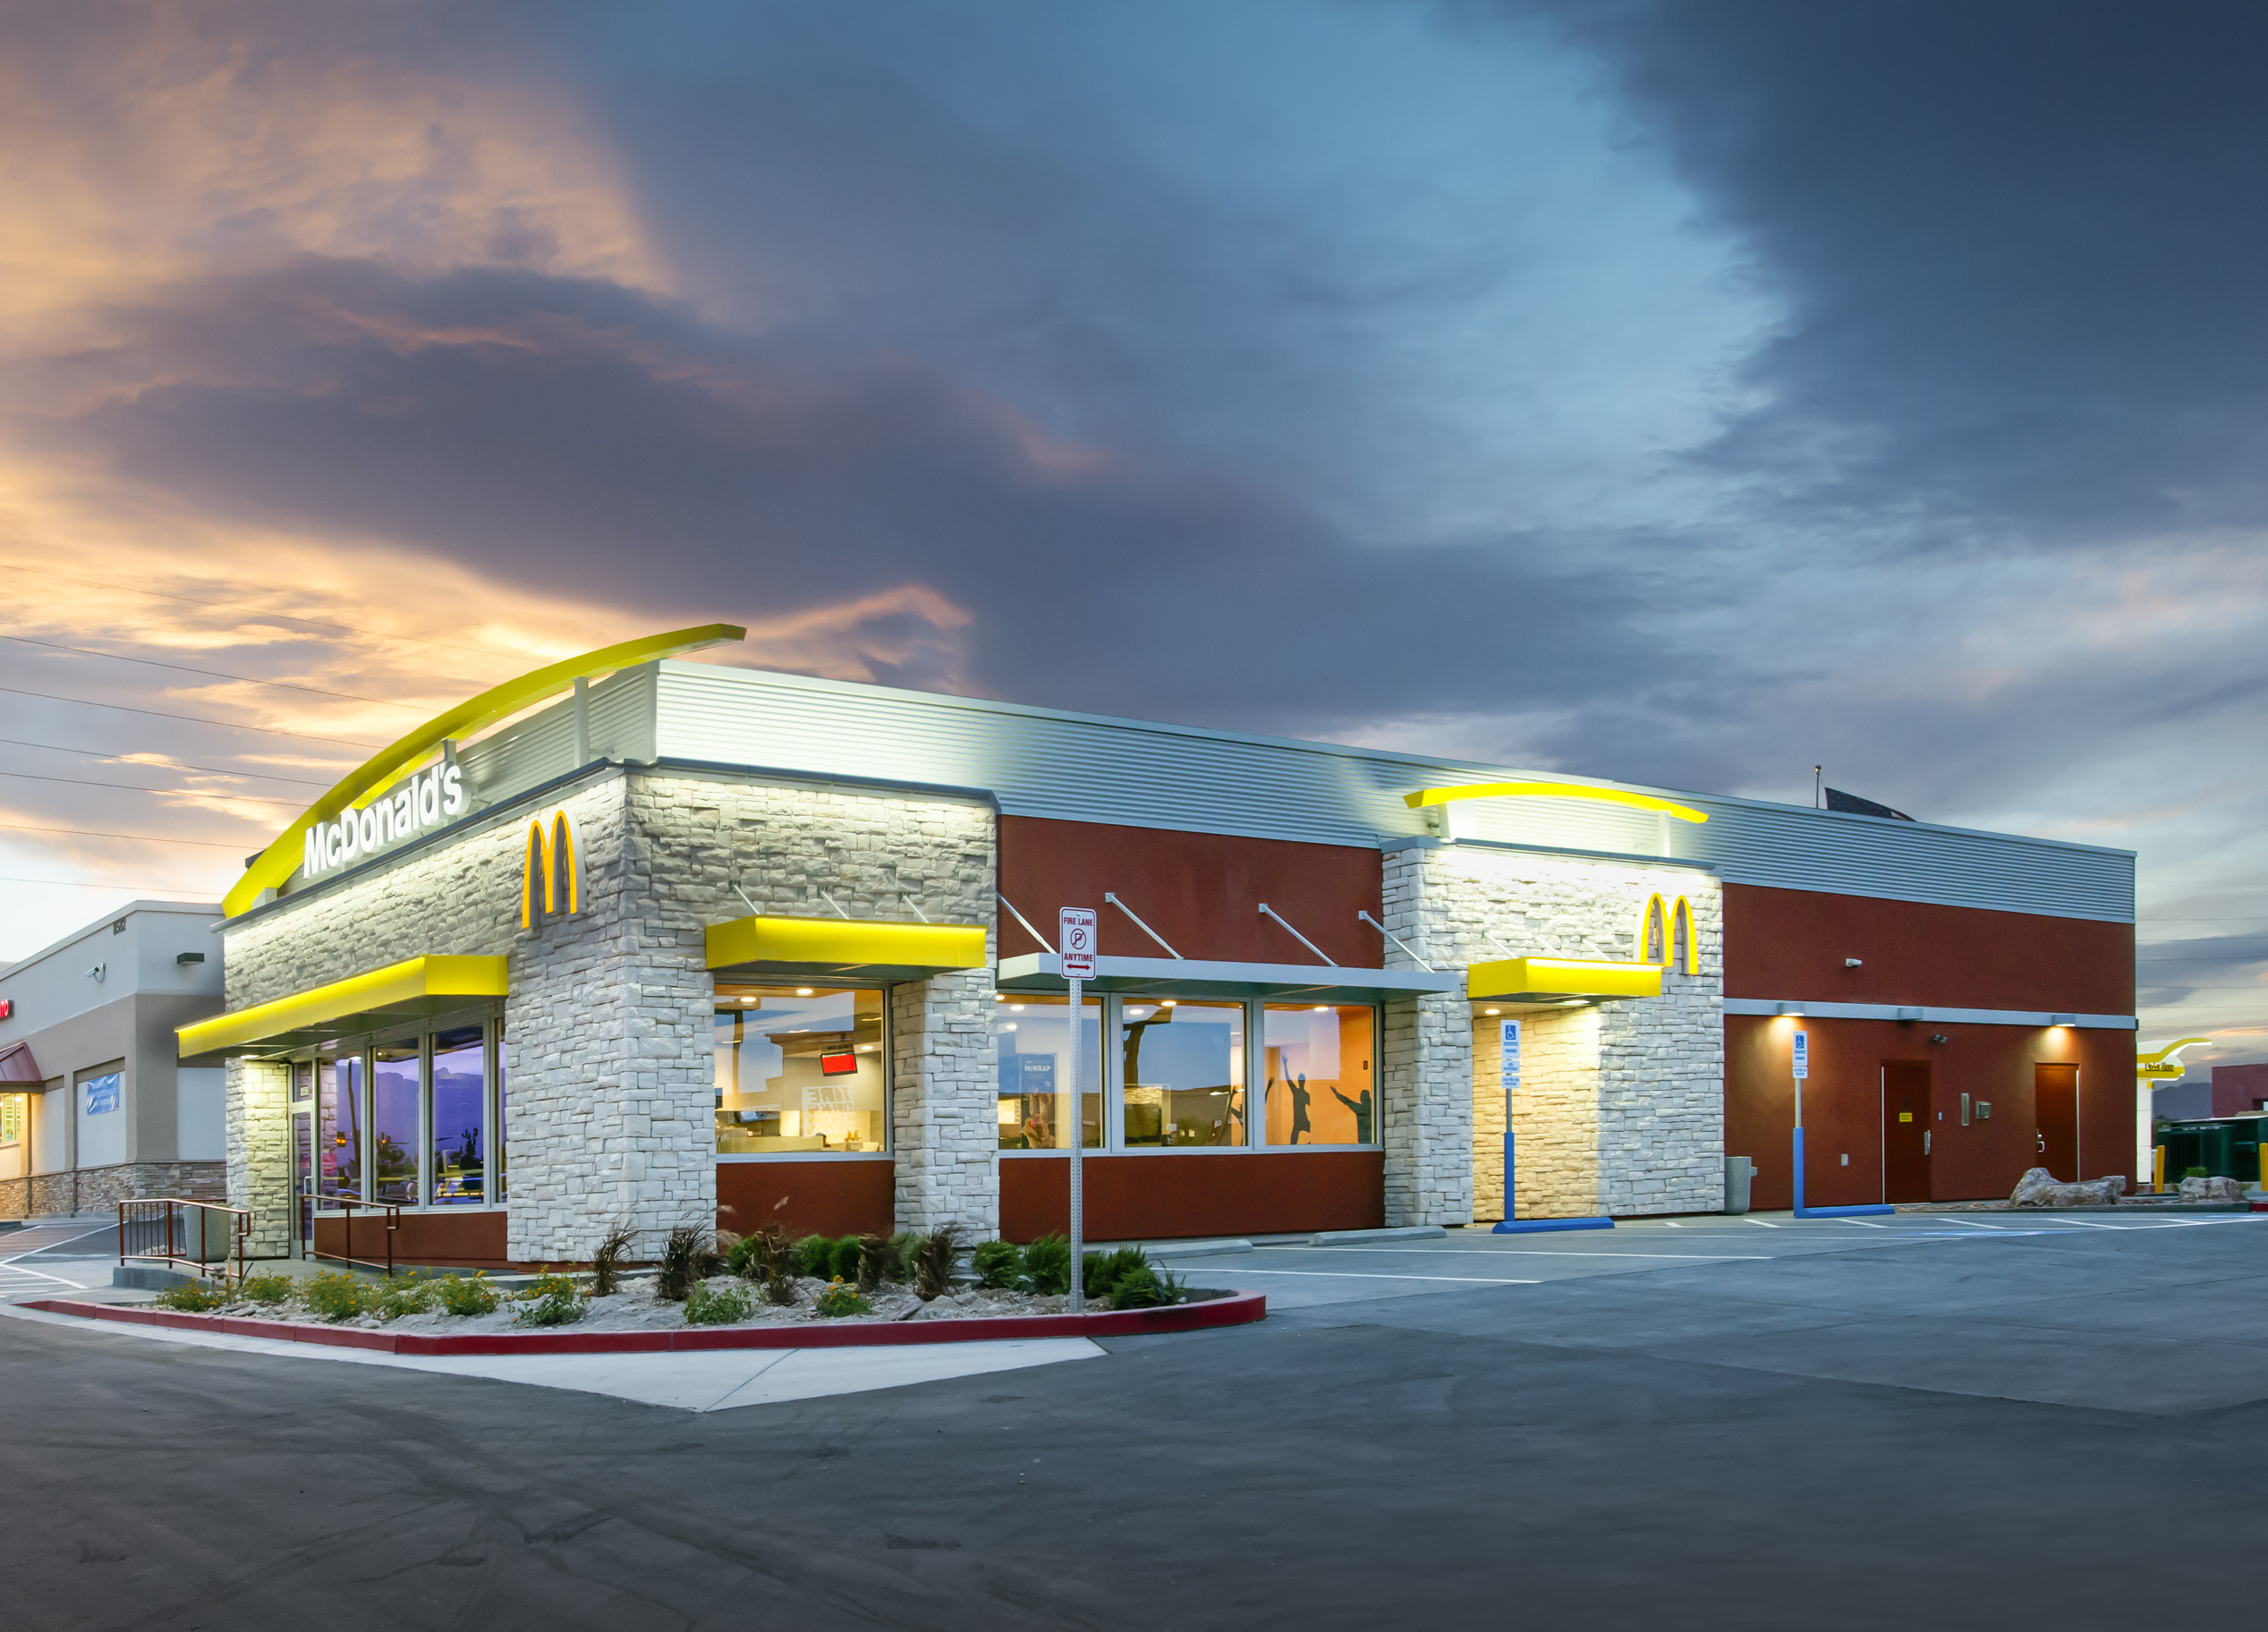 McDonald's Raising Hourly Wages at Company-Owned Locations